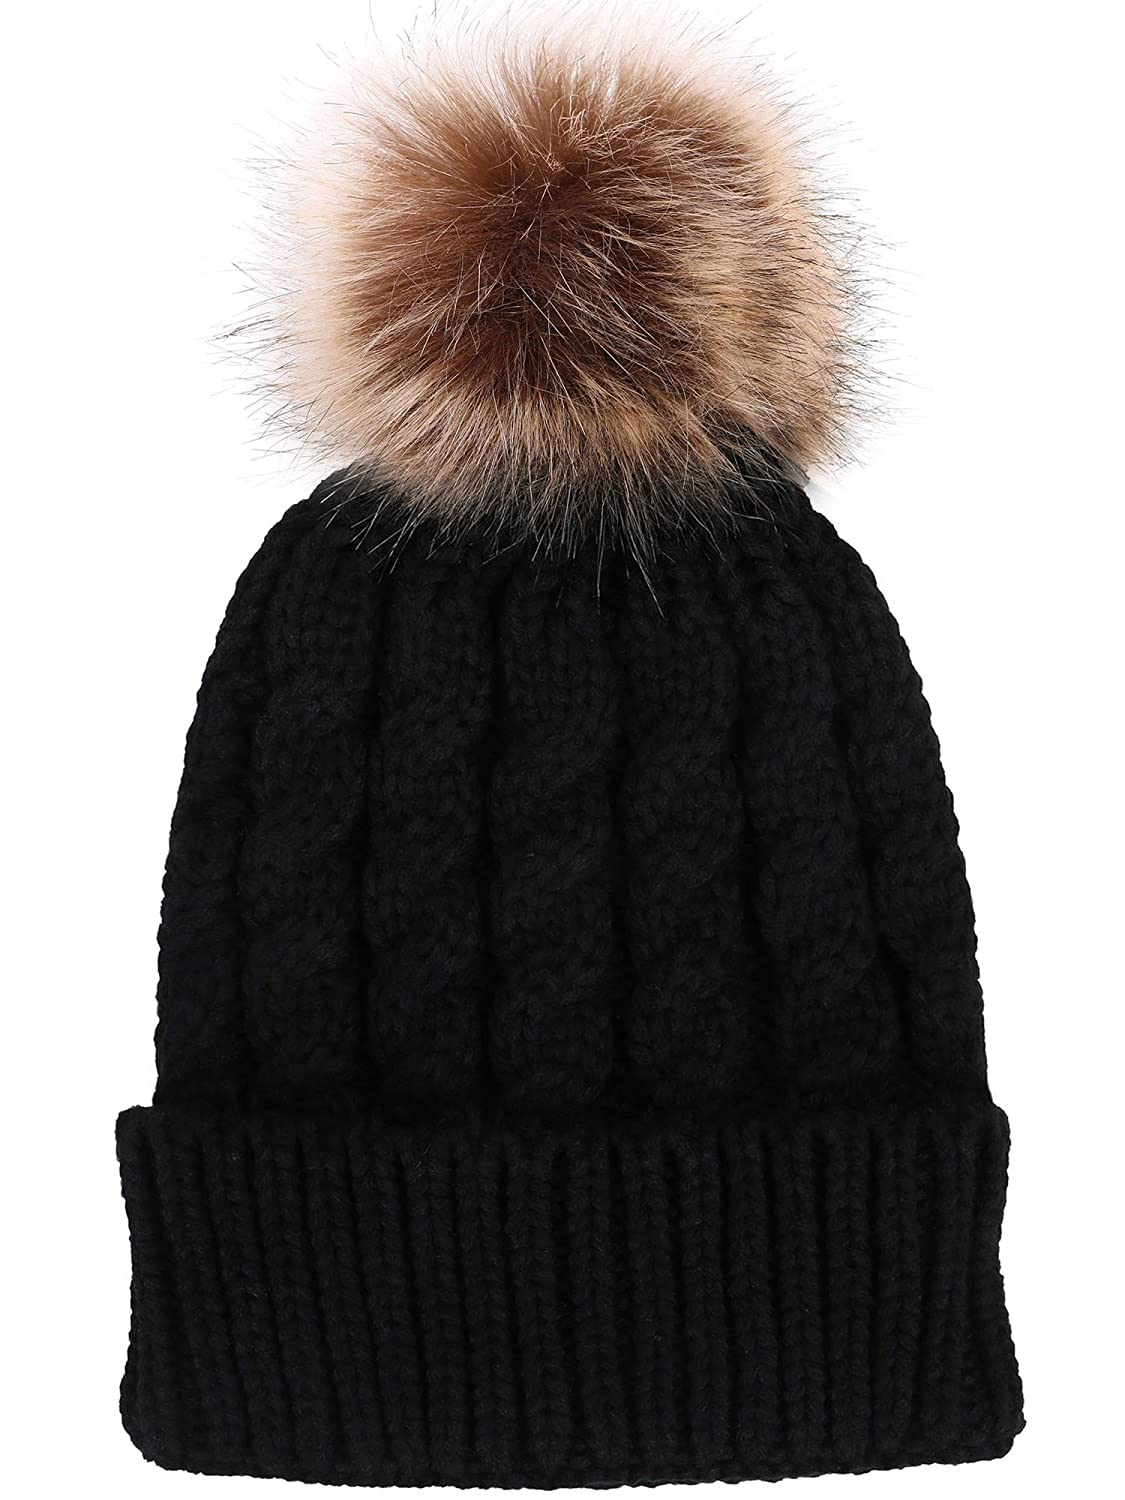 Women s Winter Soft Knitted Beanie Hat with Faux Fur Pom Pom 5d384a7ae77